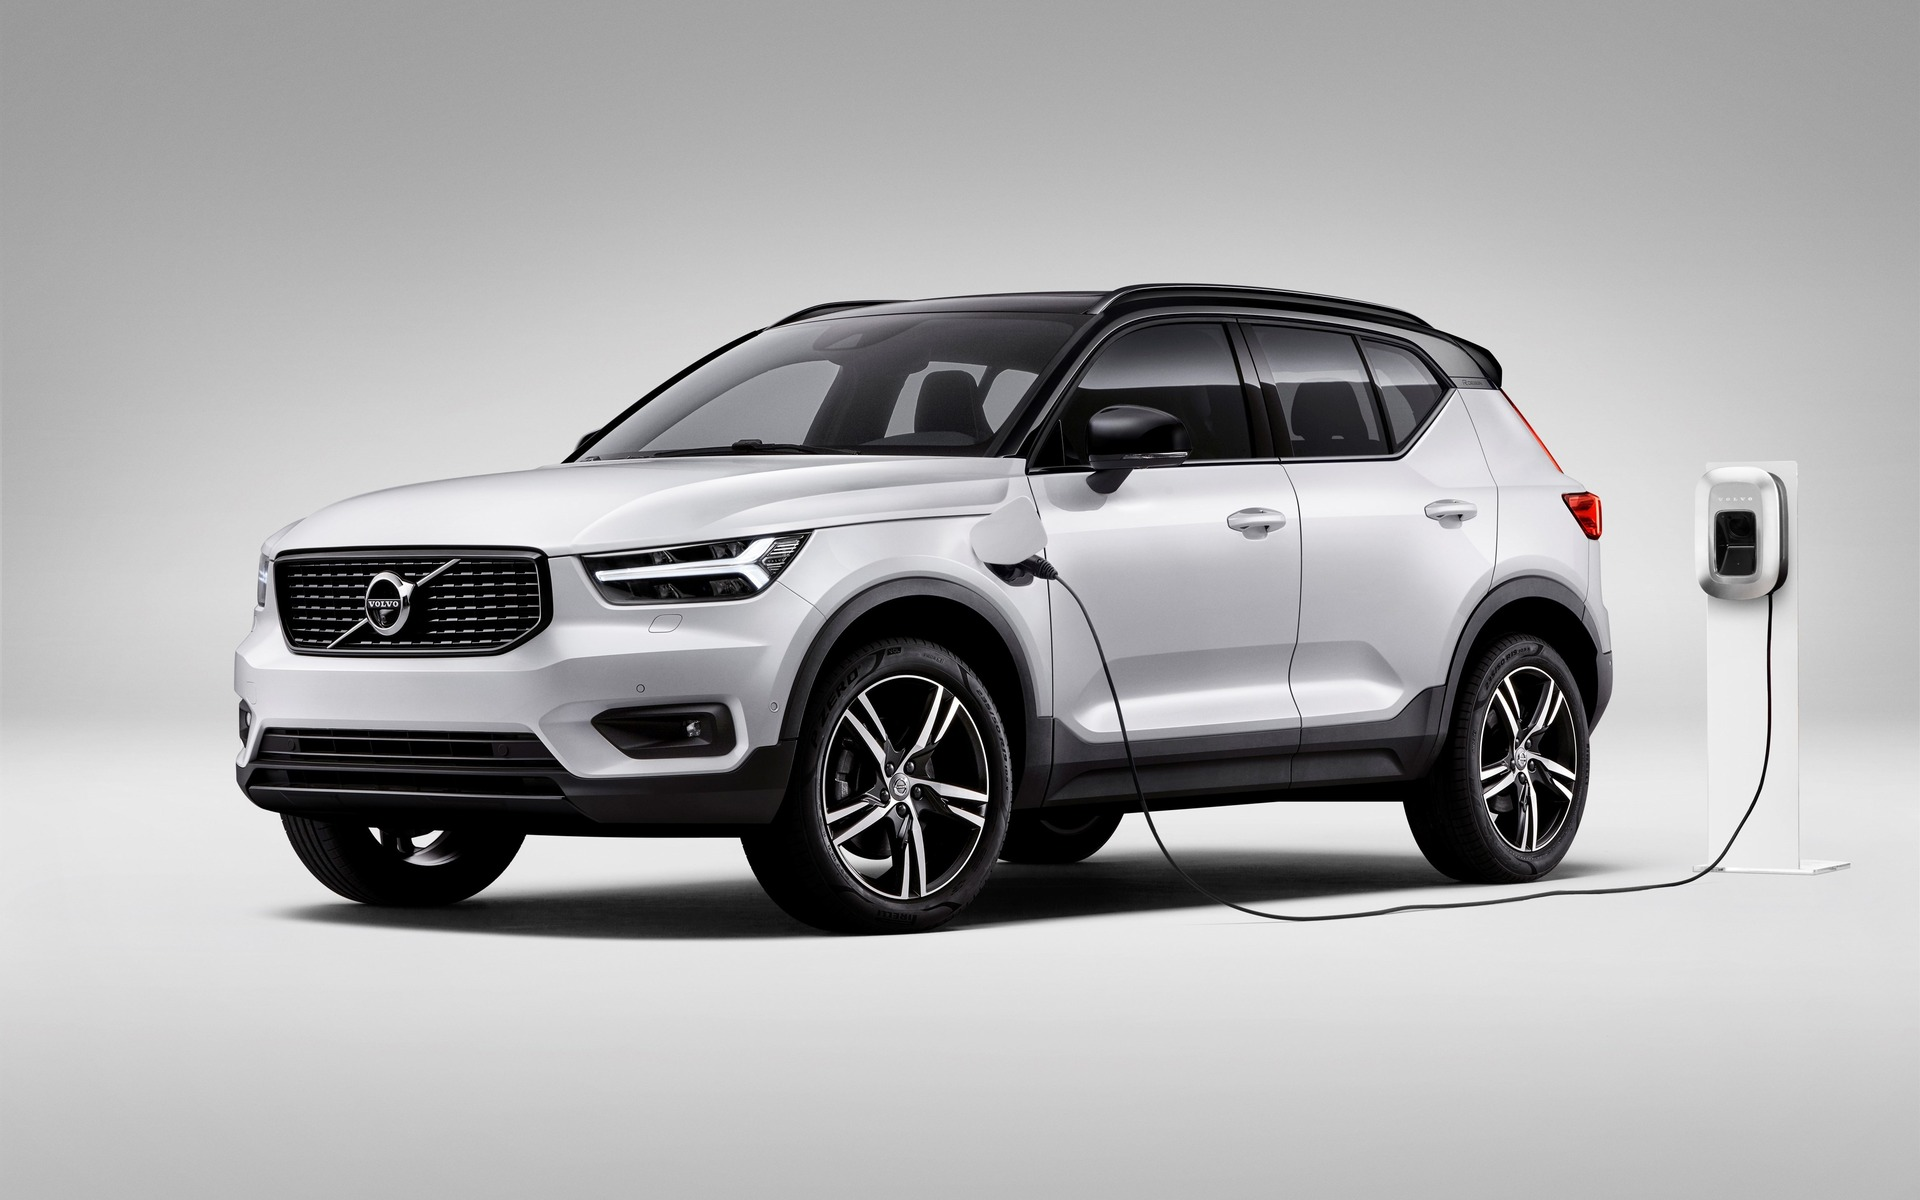 The upcoming Volvo XC40 T5 Twin Engine